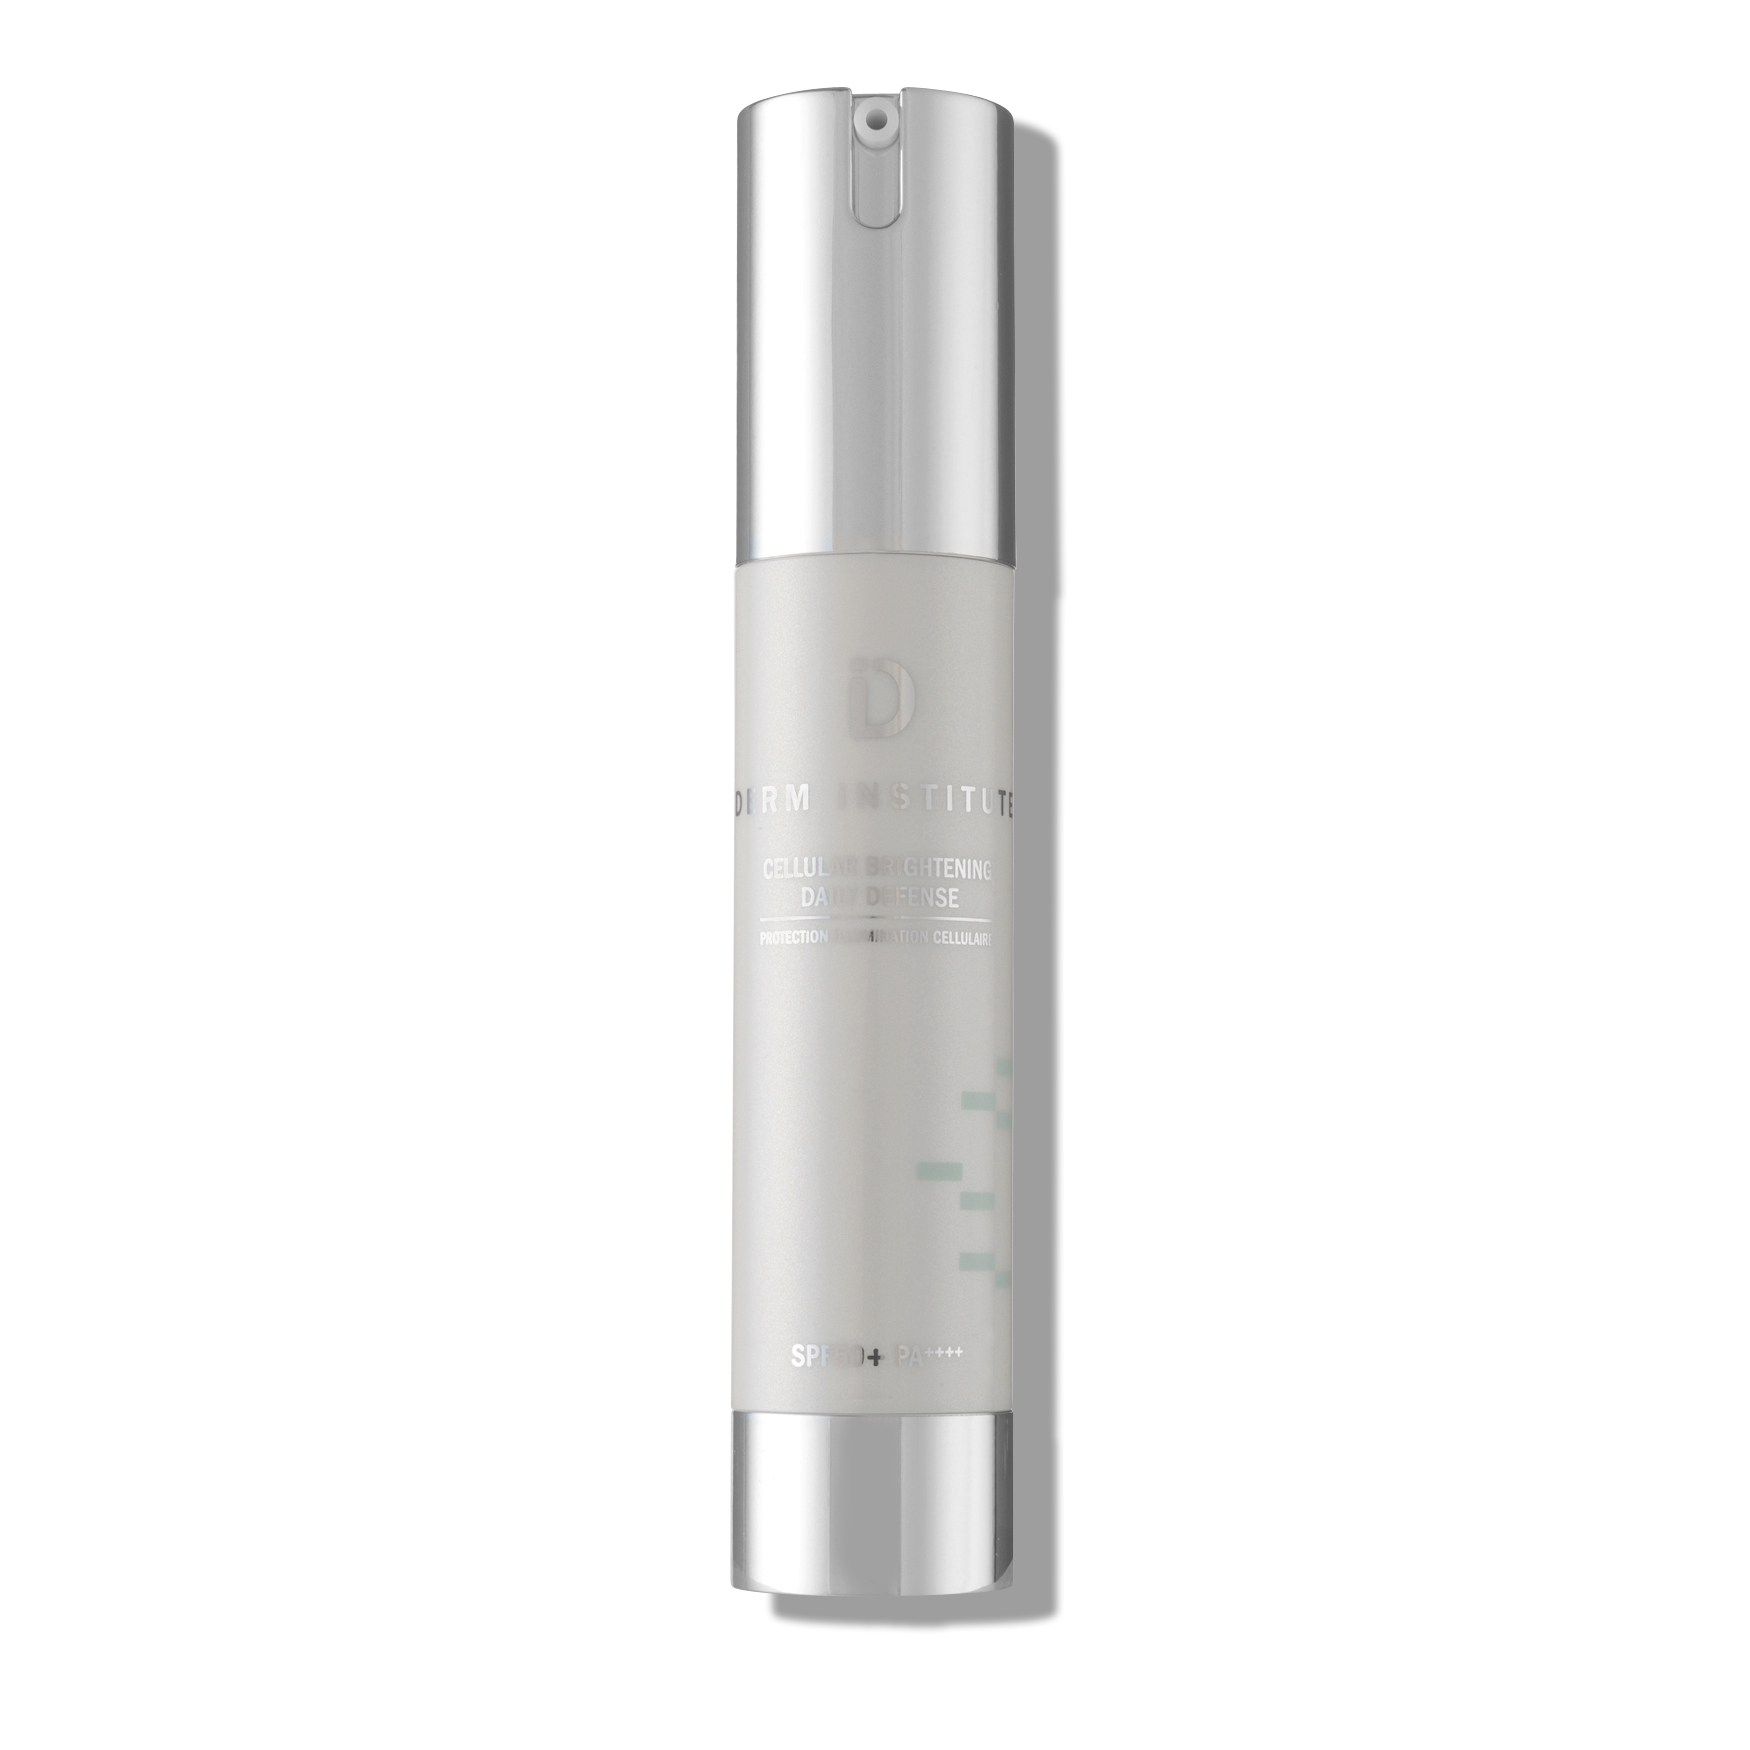 Cellular Brightening Daily Defense SPF50 PA++++, , large